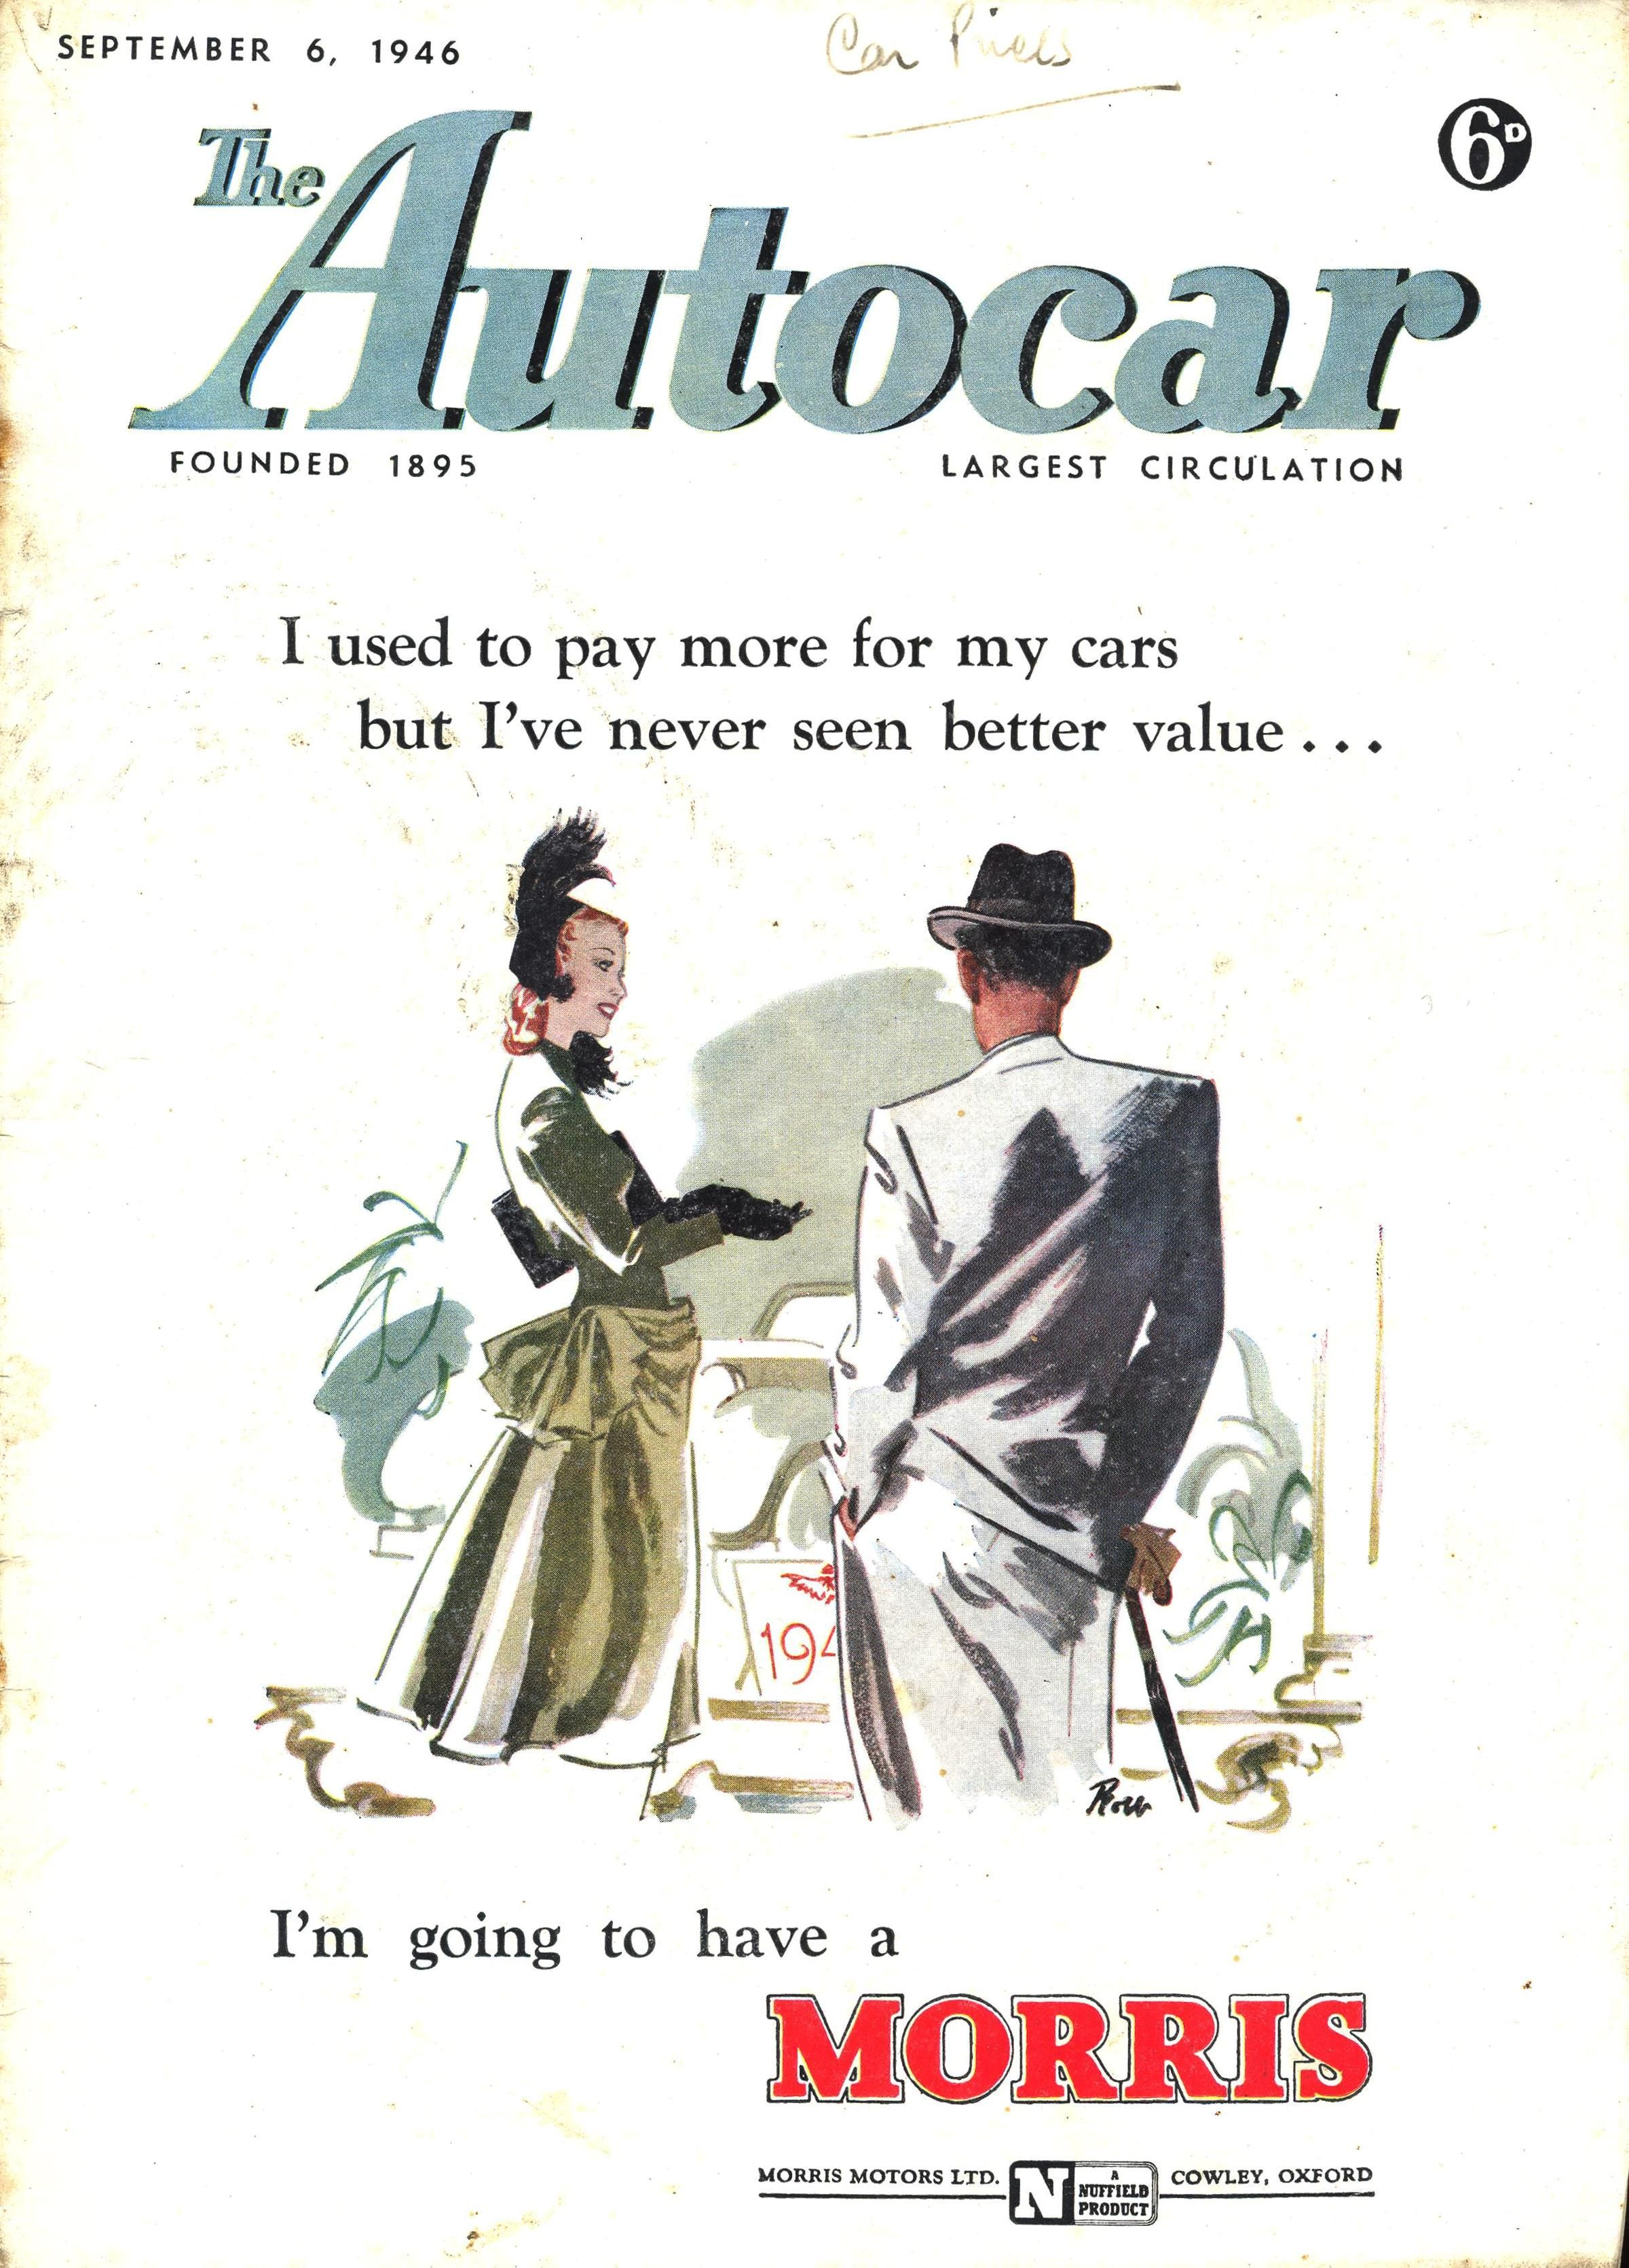 Autocar Magazine Cover September 6th 1946 - I used to pay more for my cars  but I've never seen better value - I'm going to have a Morris.